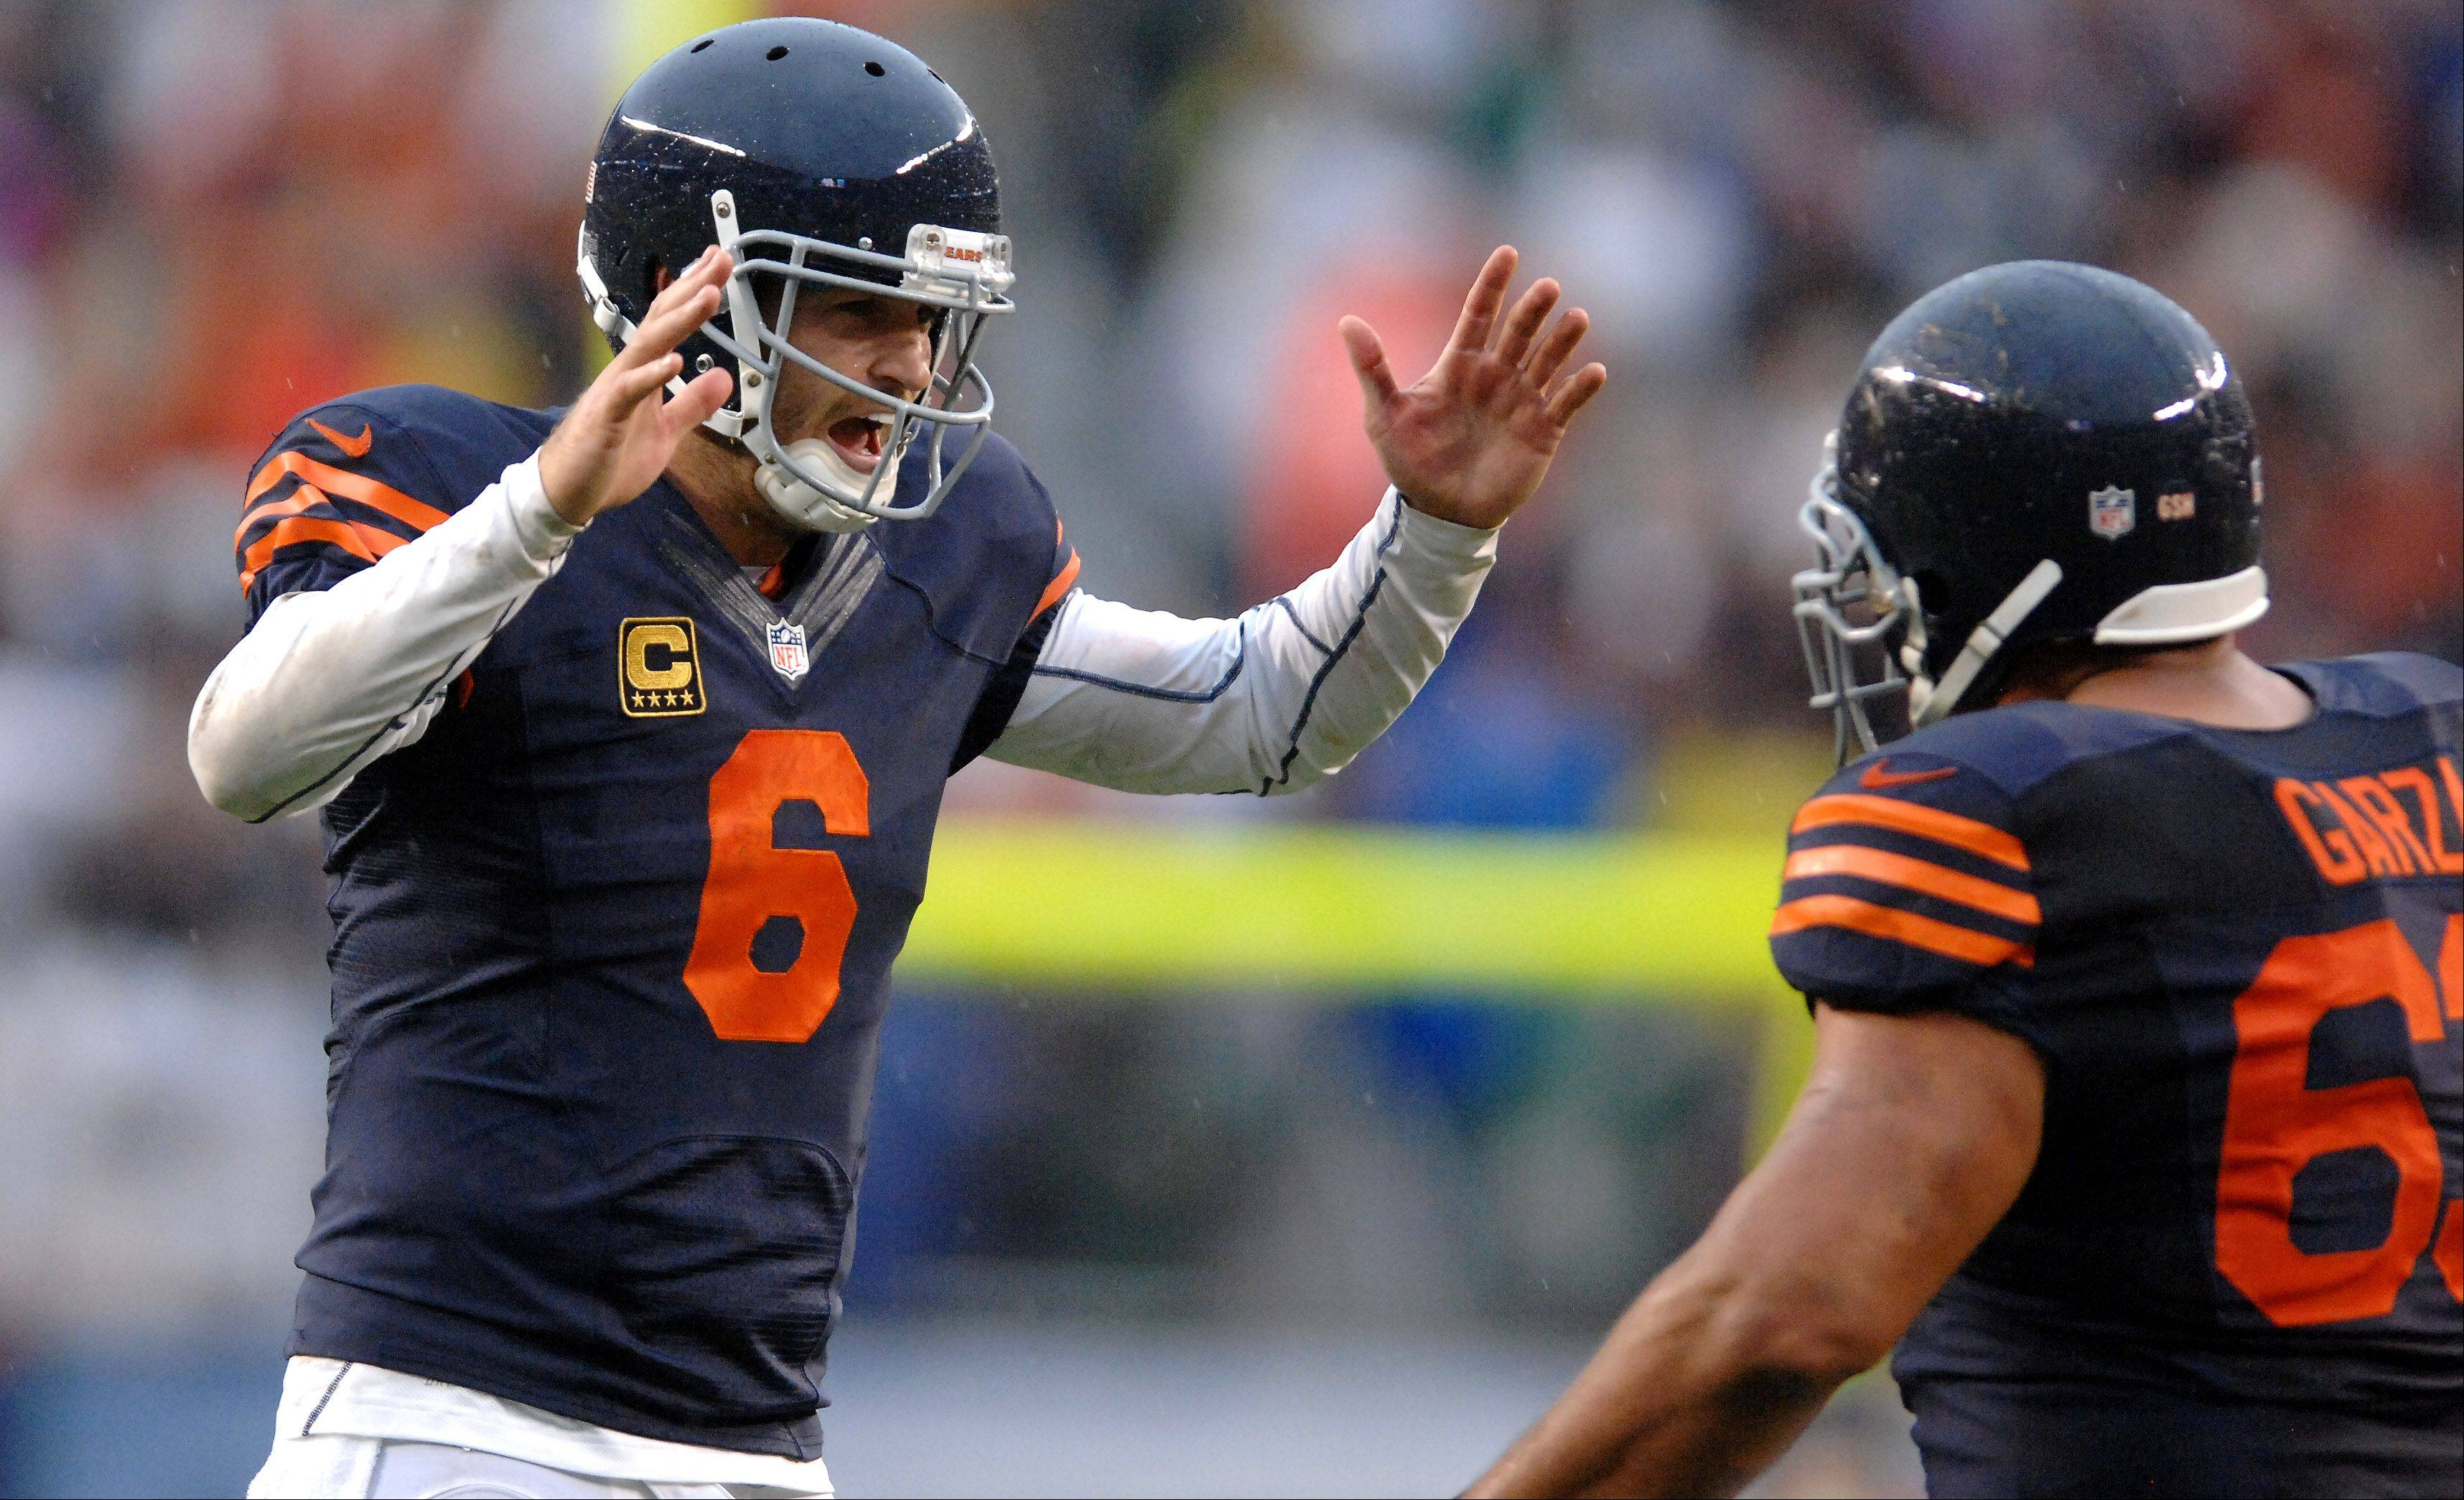 Cutler, Trestman cool when it counts